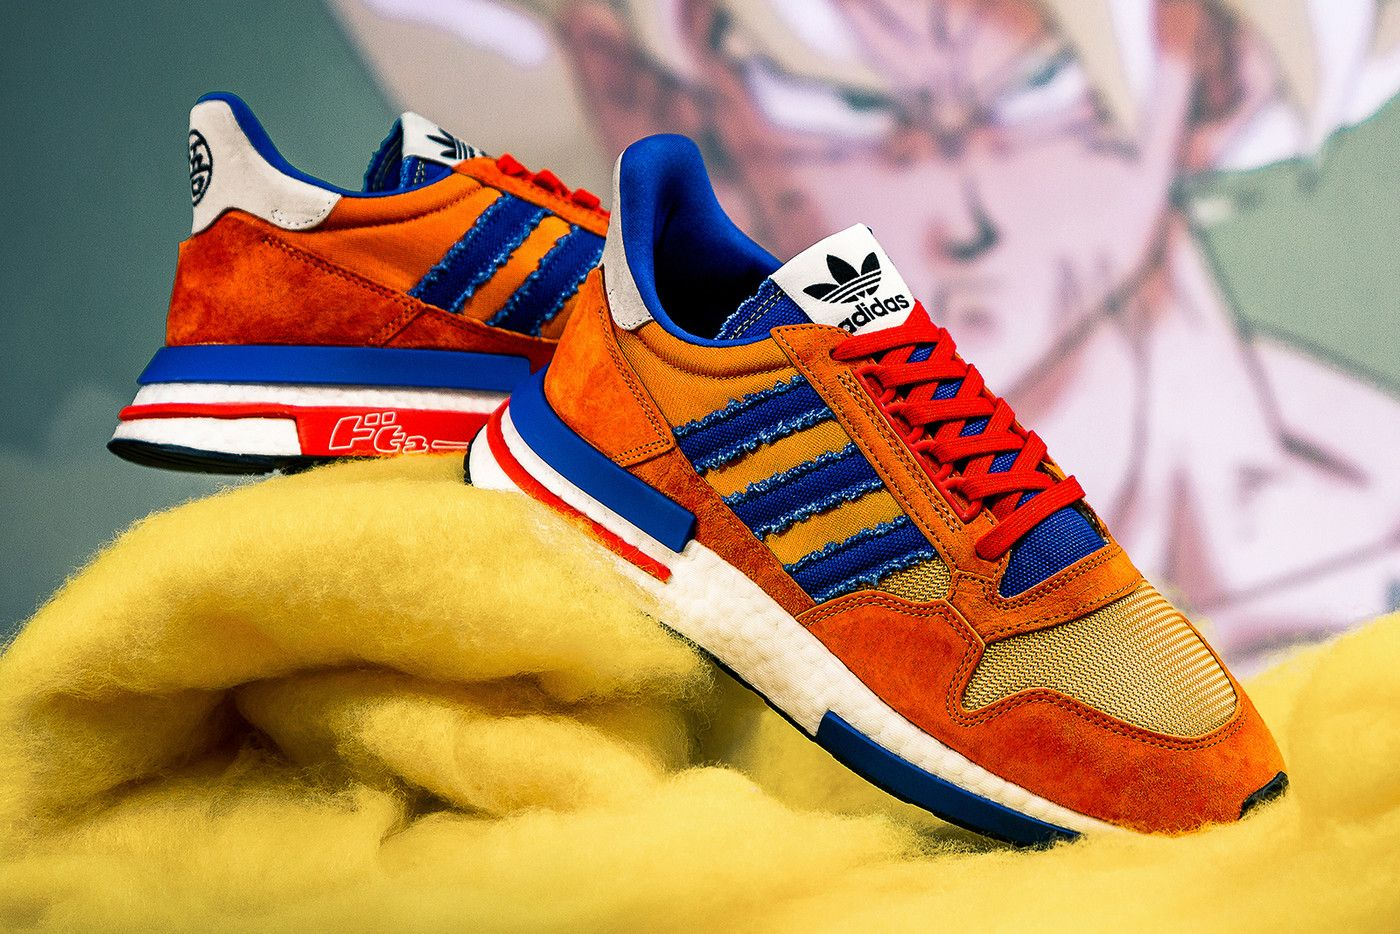 uk availability 2a989 d431c adidas originals dragon ball z closer look zx 500 rm goku prophere cell  yung-1 frieza Deerupt